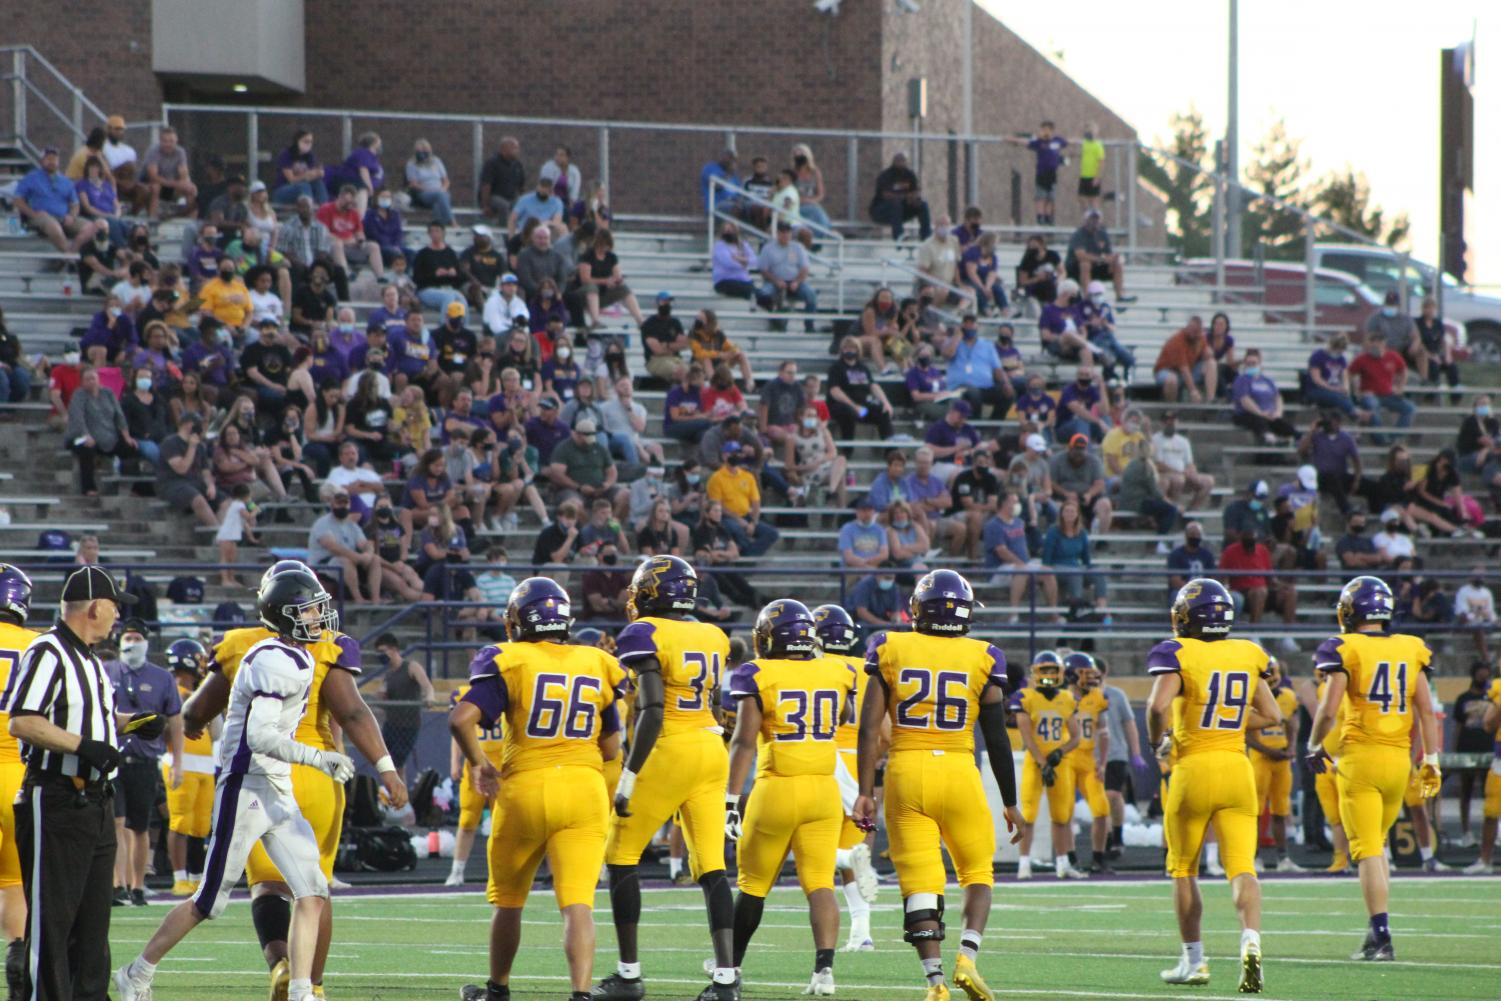 The defensive line sets up for a play at the East West football game on Sept. 4, 2020.